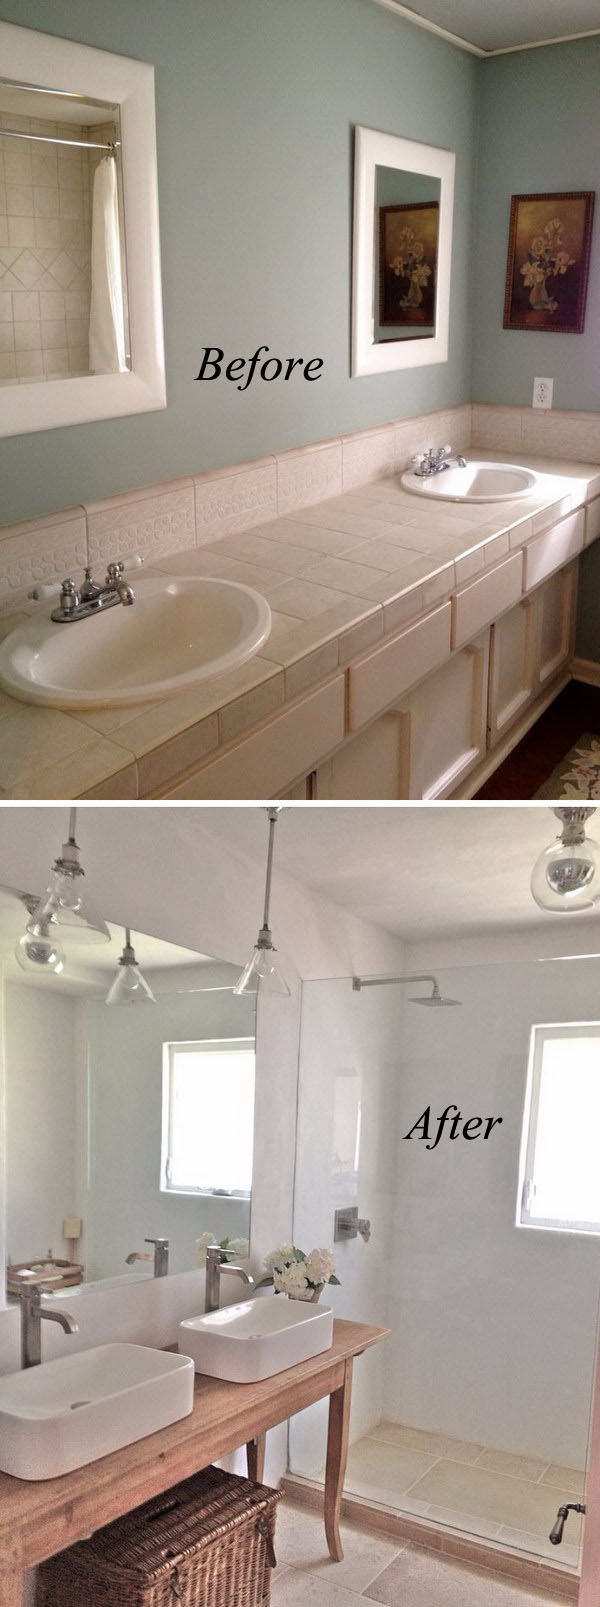 Clean And Crisp Small Bathroom Renovation Before After